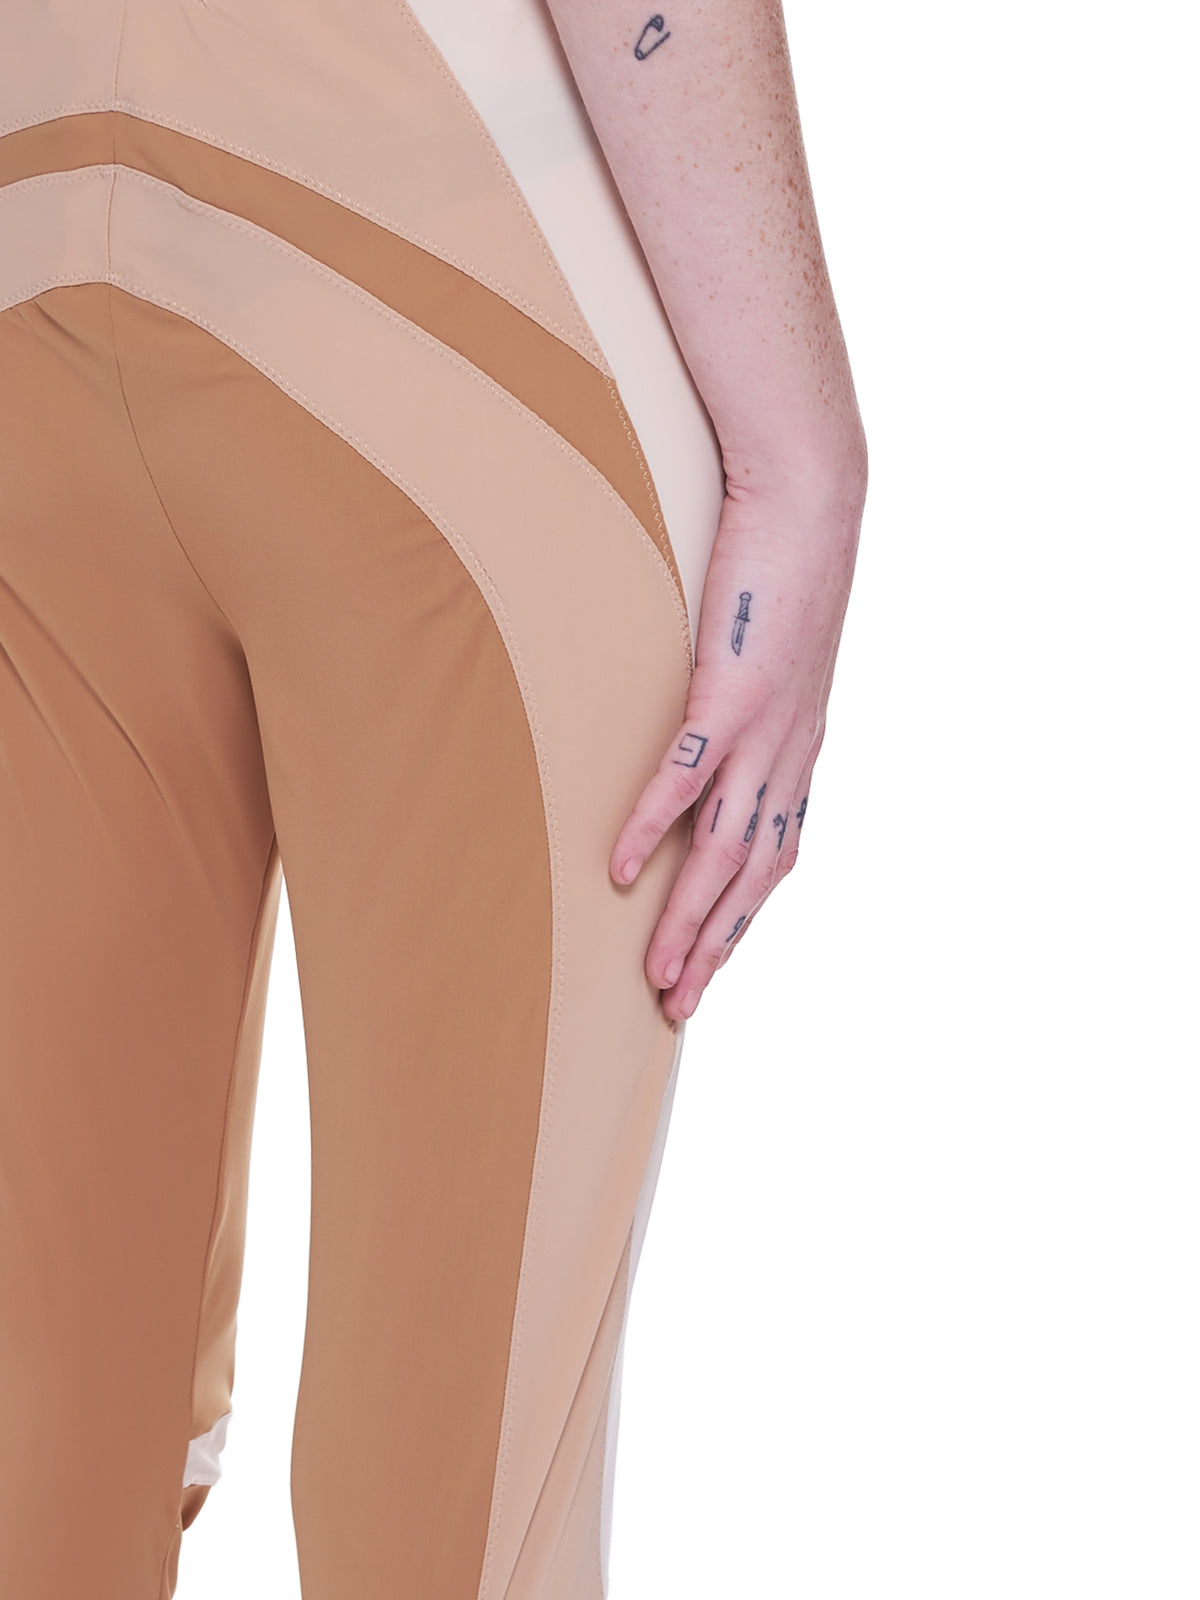 MM6 Maison Margiela Leggings | H.Lorenzo - detail 2